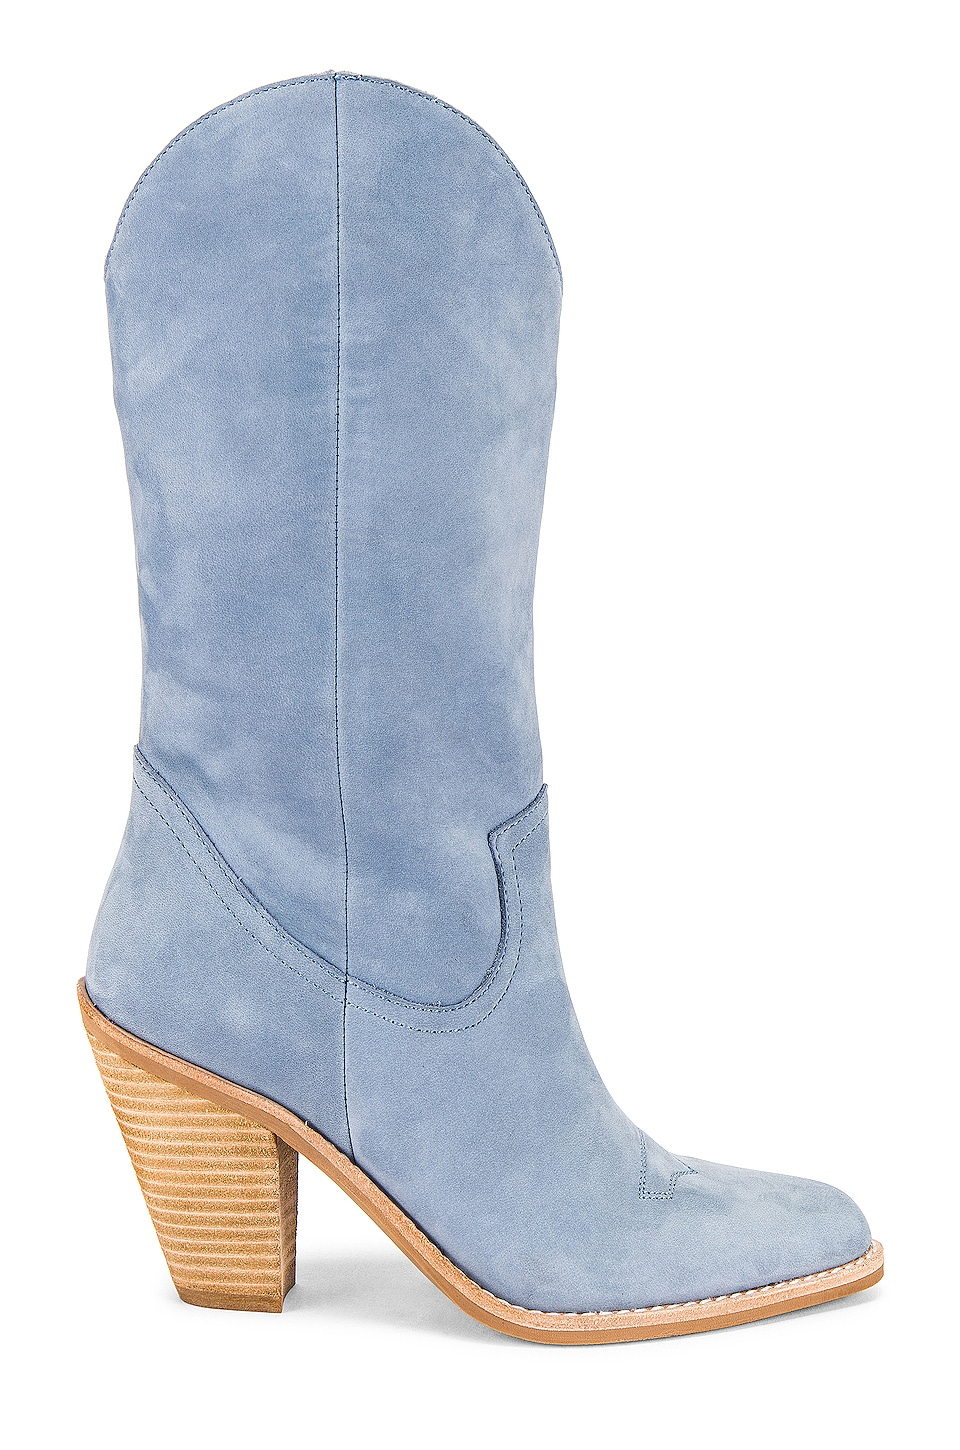 Jeffrey Campbell Tavetti Boot in Blue